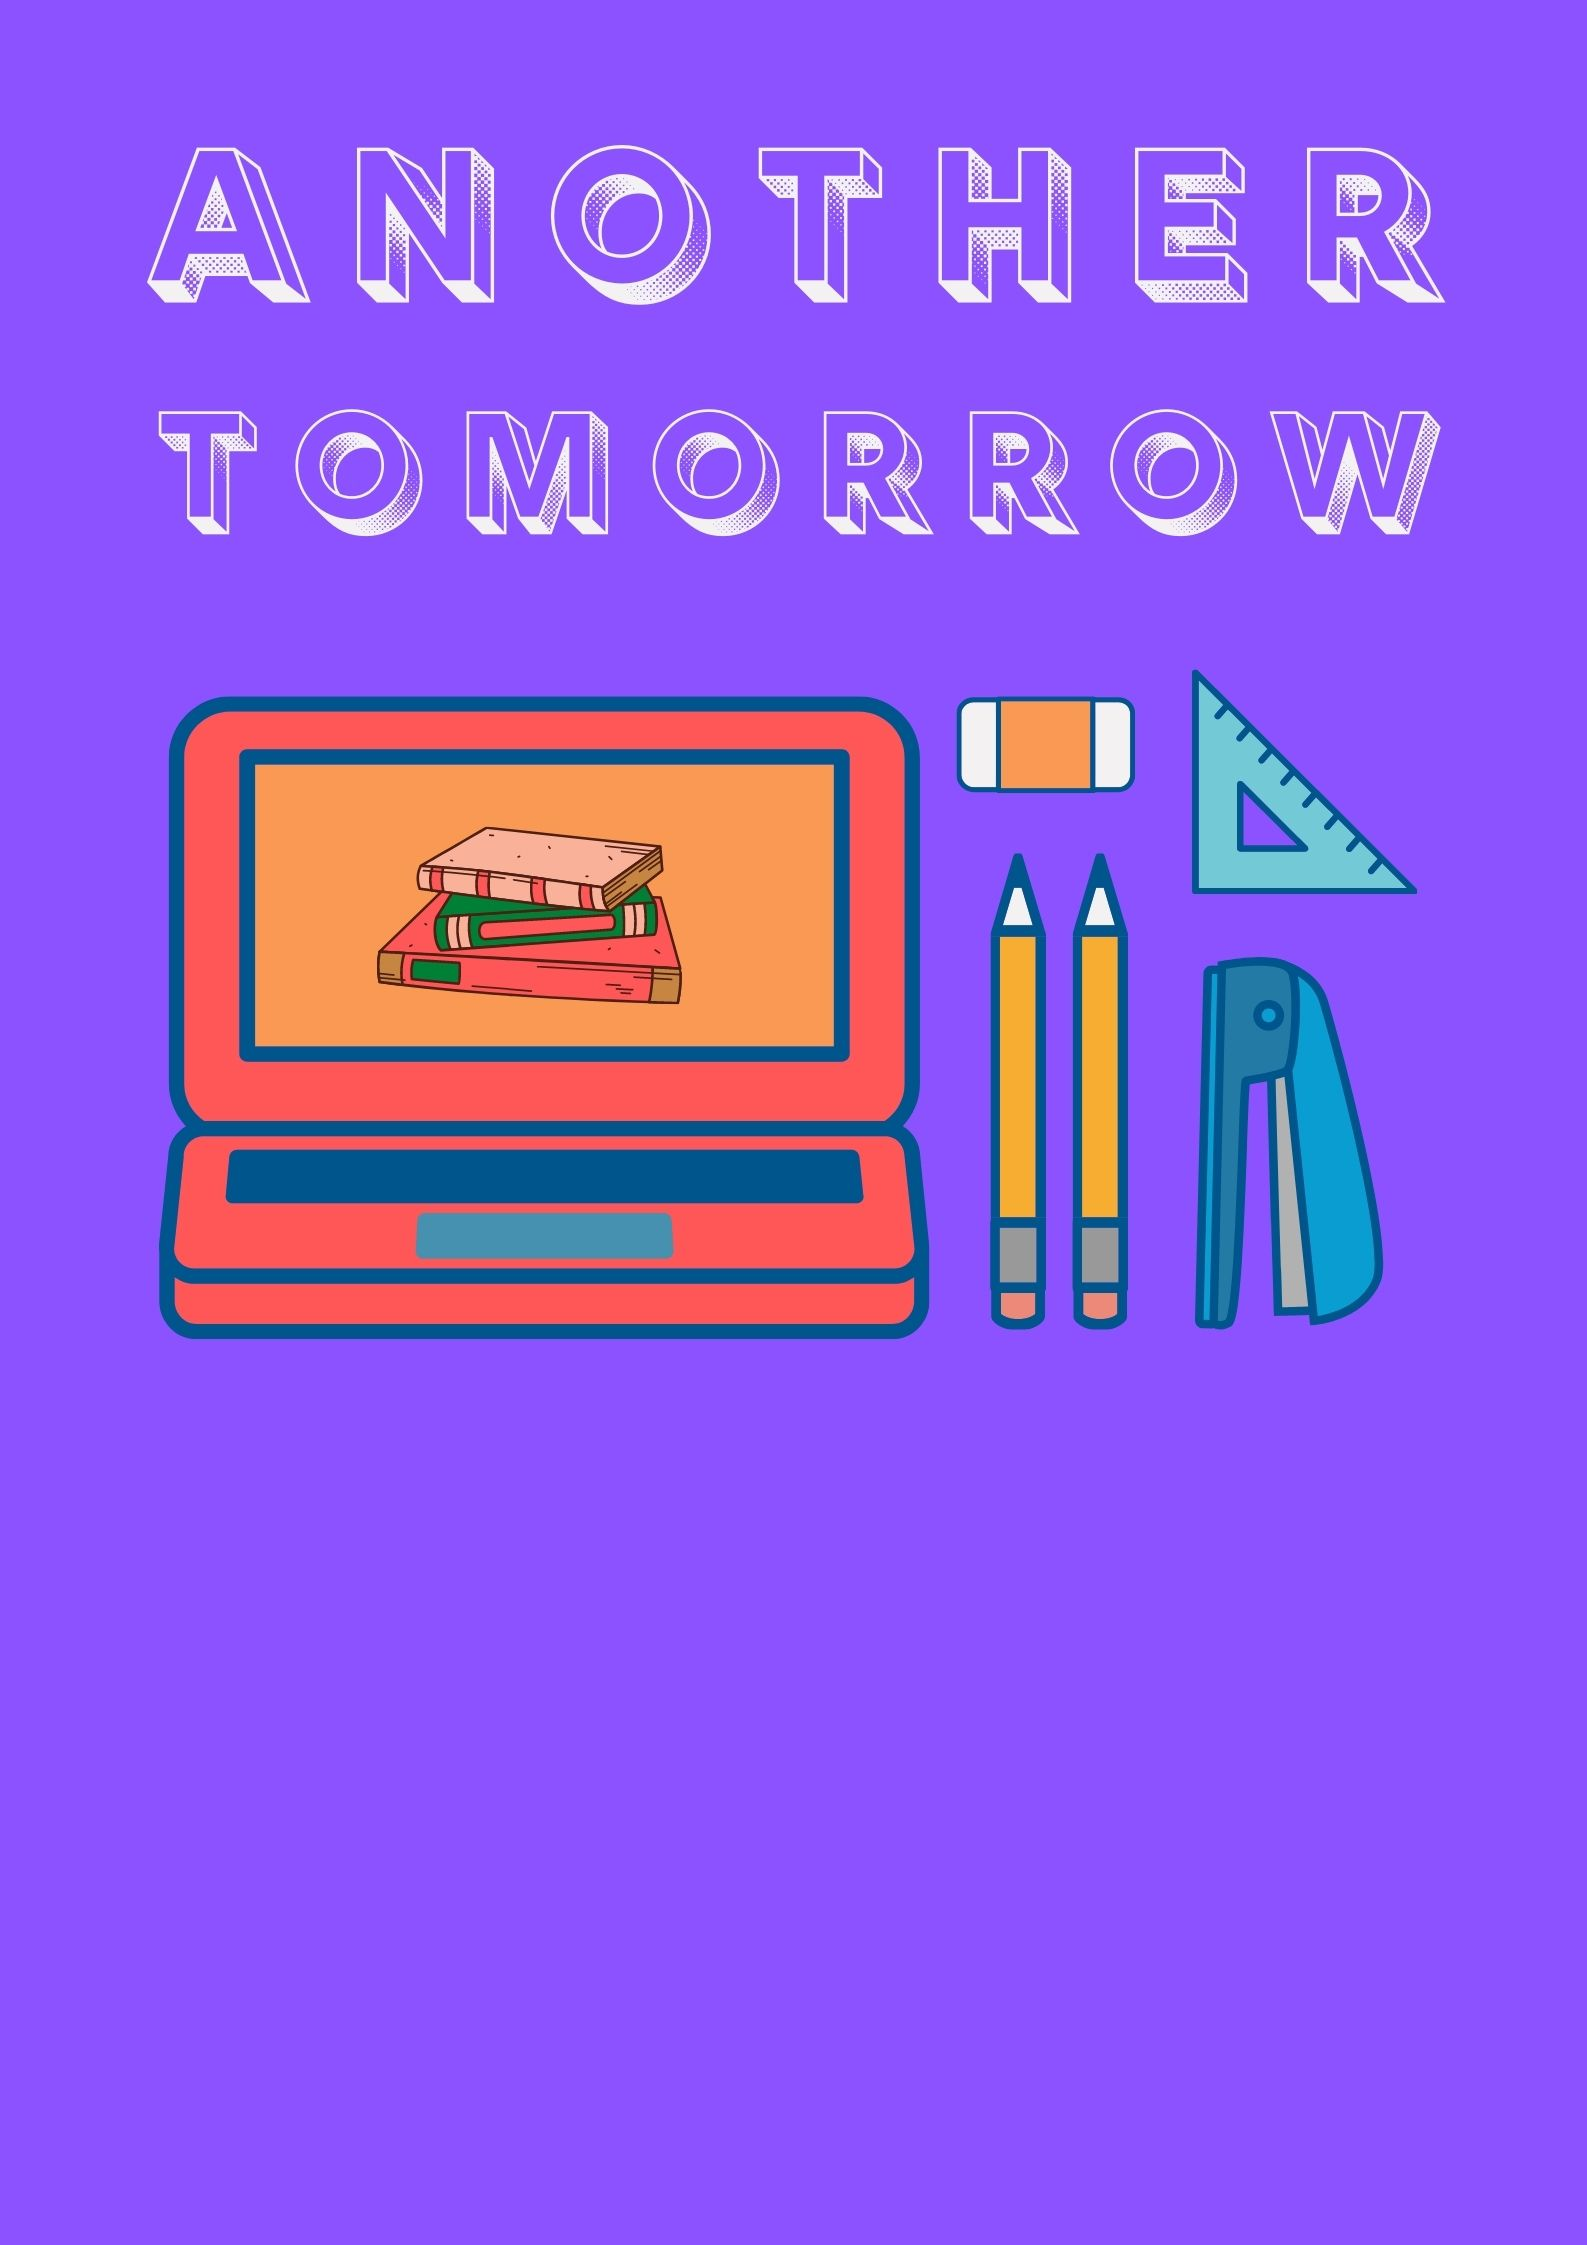 Another Tomorrow